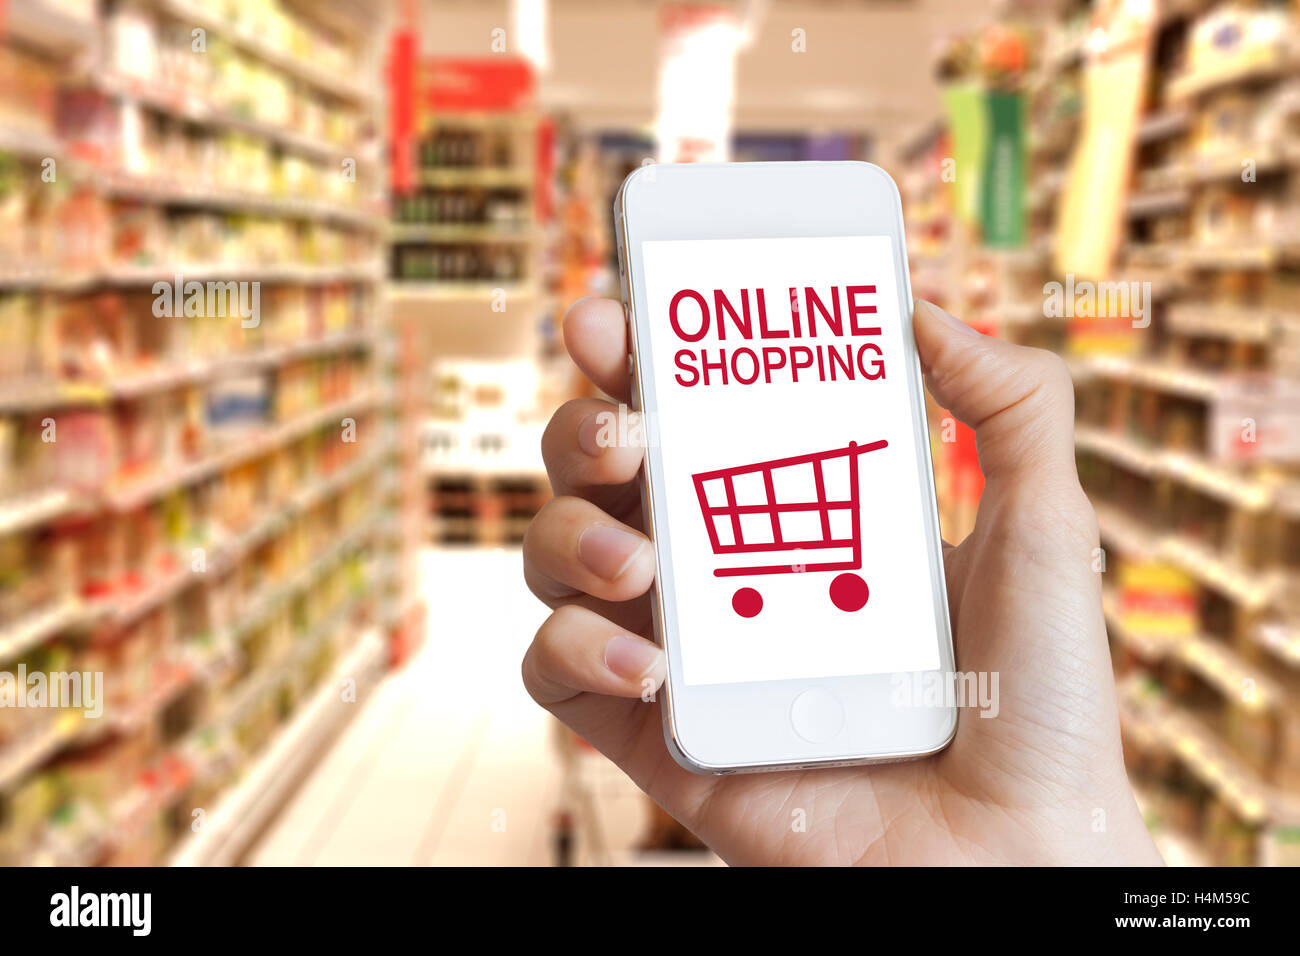 ac45c4731 Online shopping application on mobile phone screen with grocery store in  the background